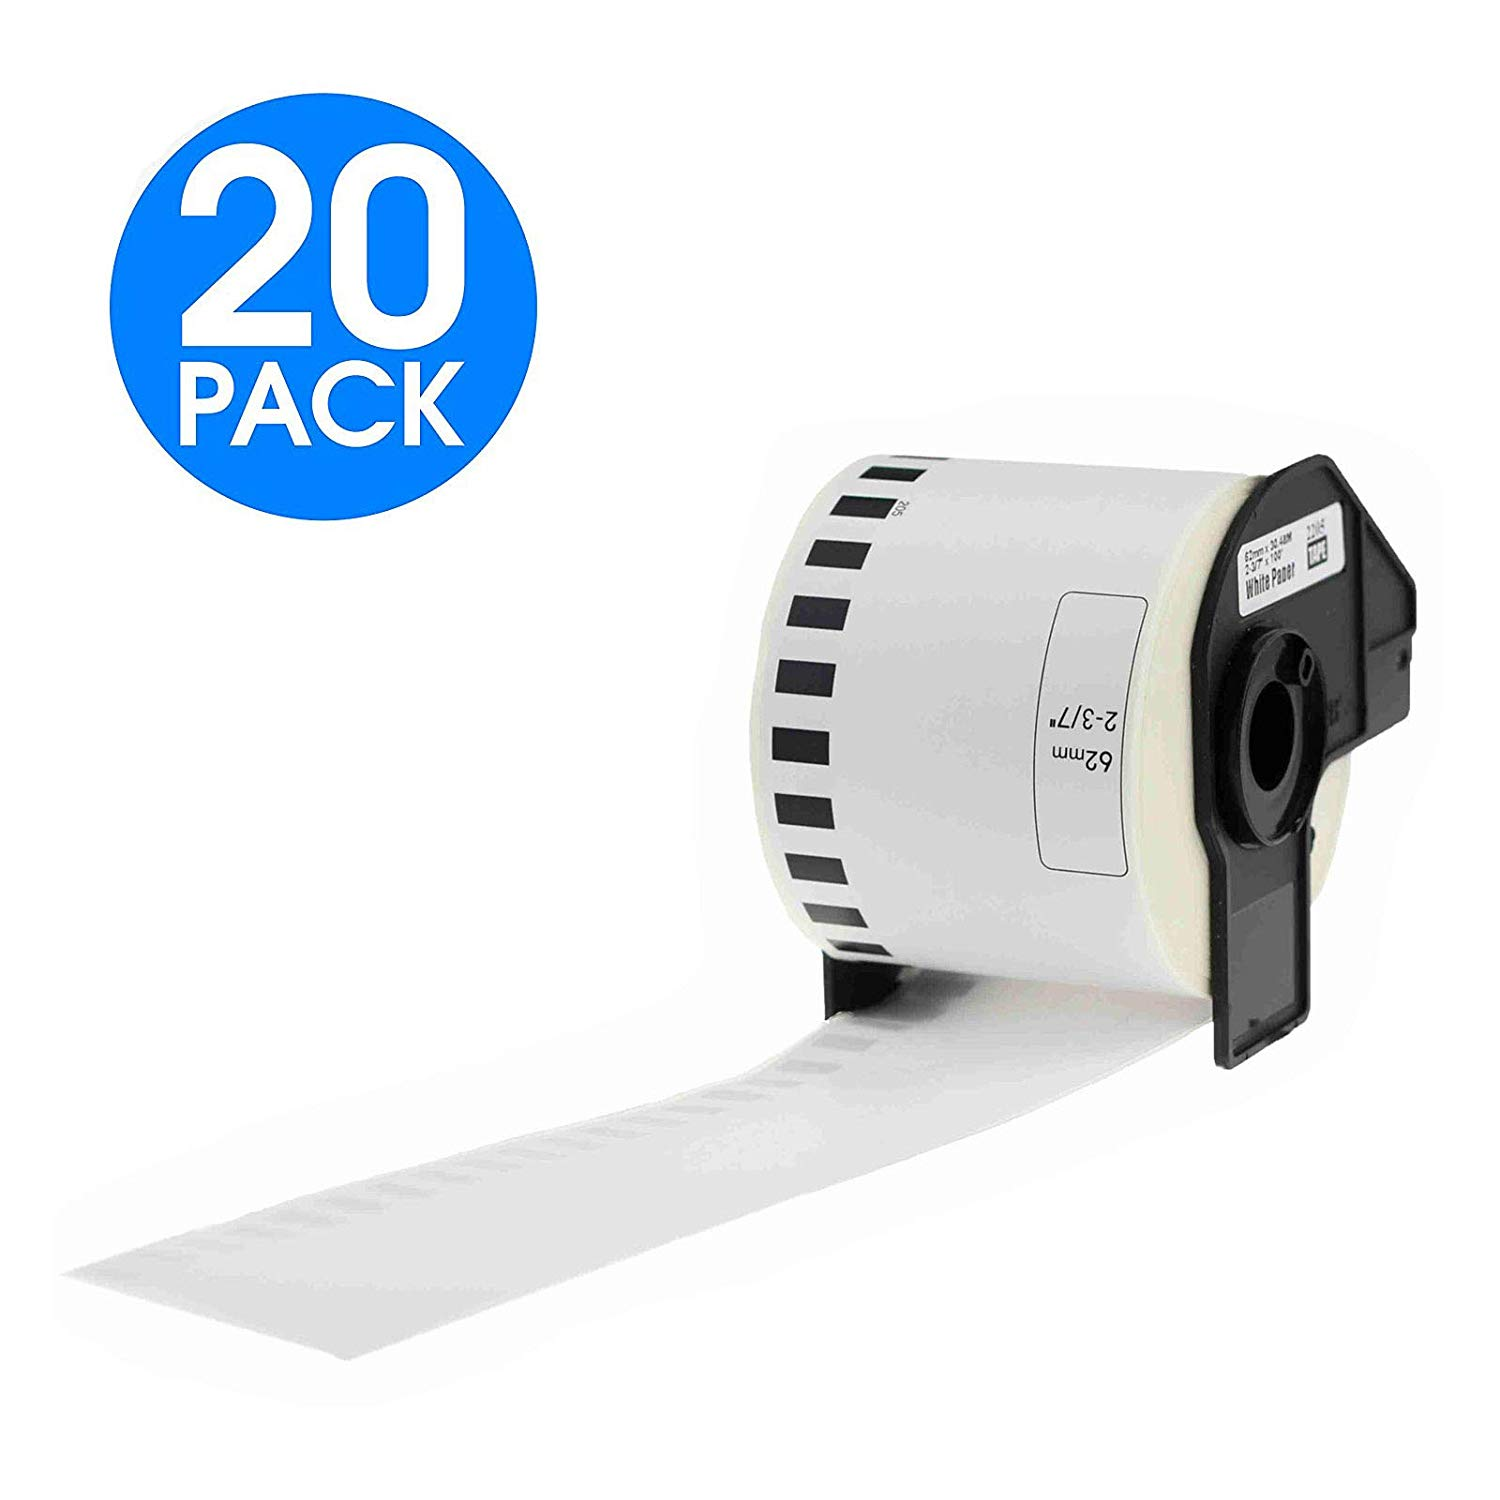 KCYMTONER 20 Rolls DK-2205 Continuous Length Paper Labels,2.4 (2-3/7) Inches (62mm) by 100 ft,Compatible with Brother P-Touch QL-Series Printers QL-500 QL-720NW QL-1060N,Includes (20) Snap-On-Frame